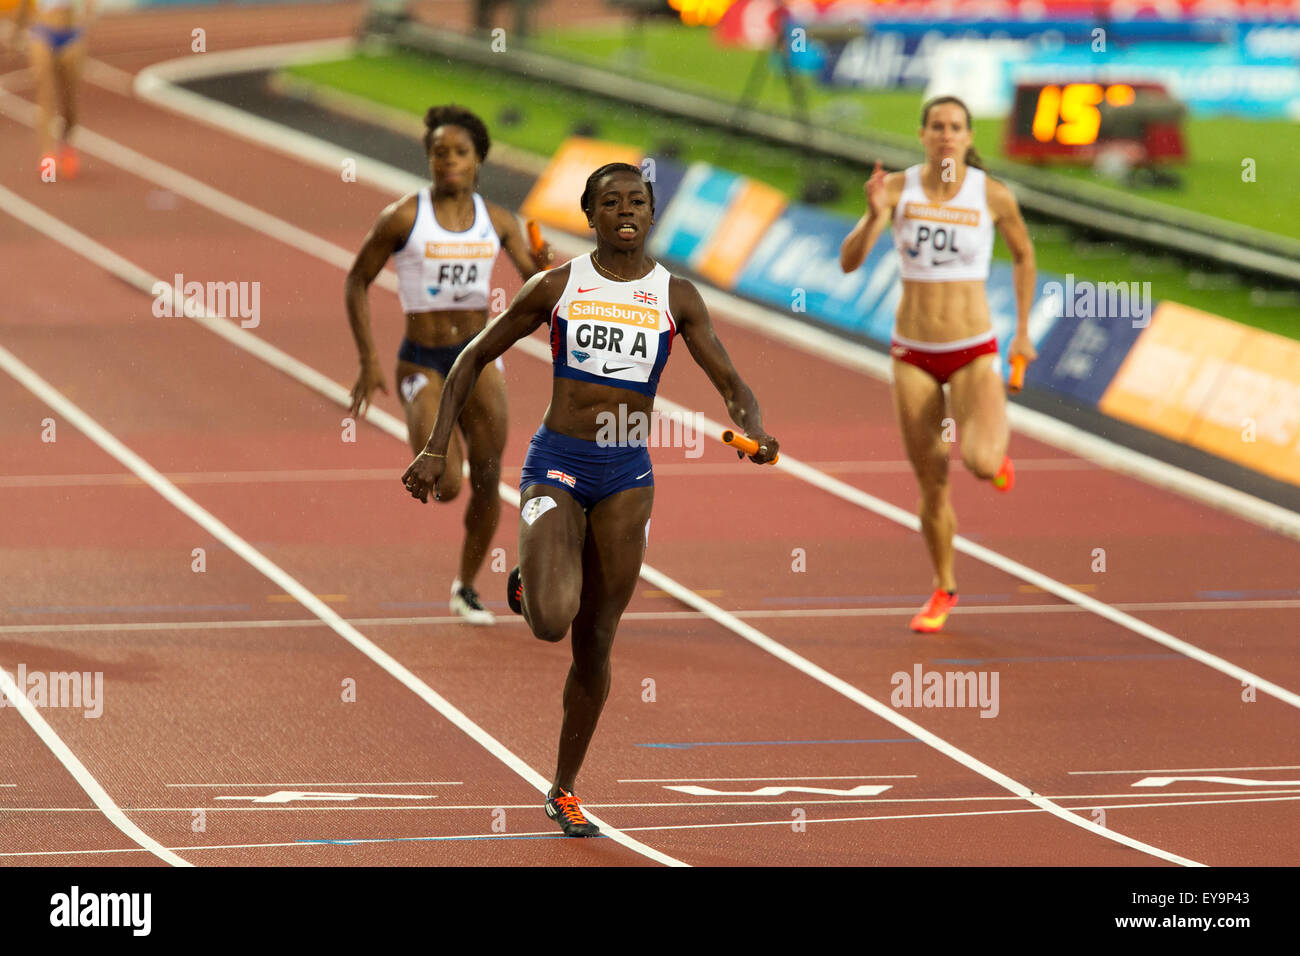 London, UK. 24th July, 2015. Desiree HENRY on the final leg for Team GBR A, Women's 4x100m relay Diamond League - Stock Image